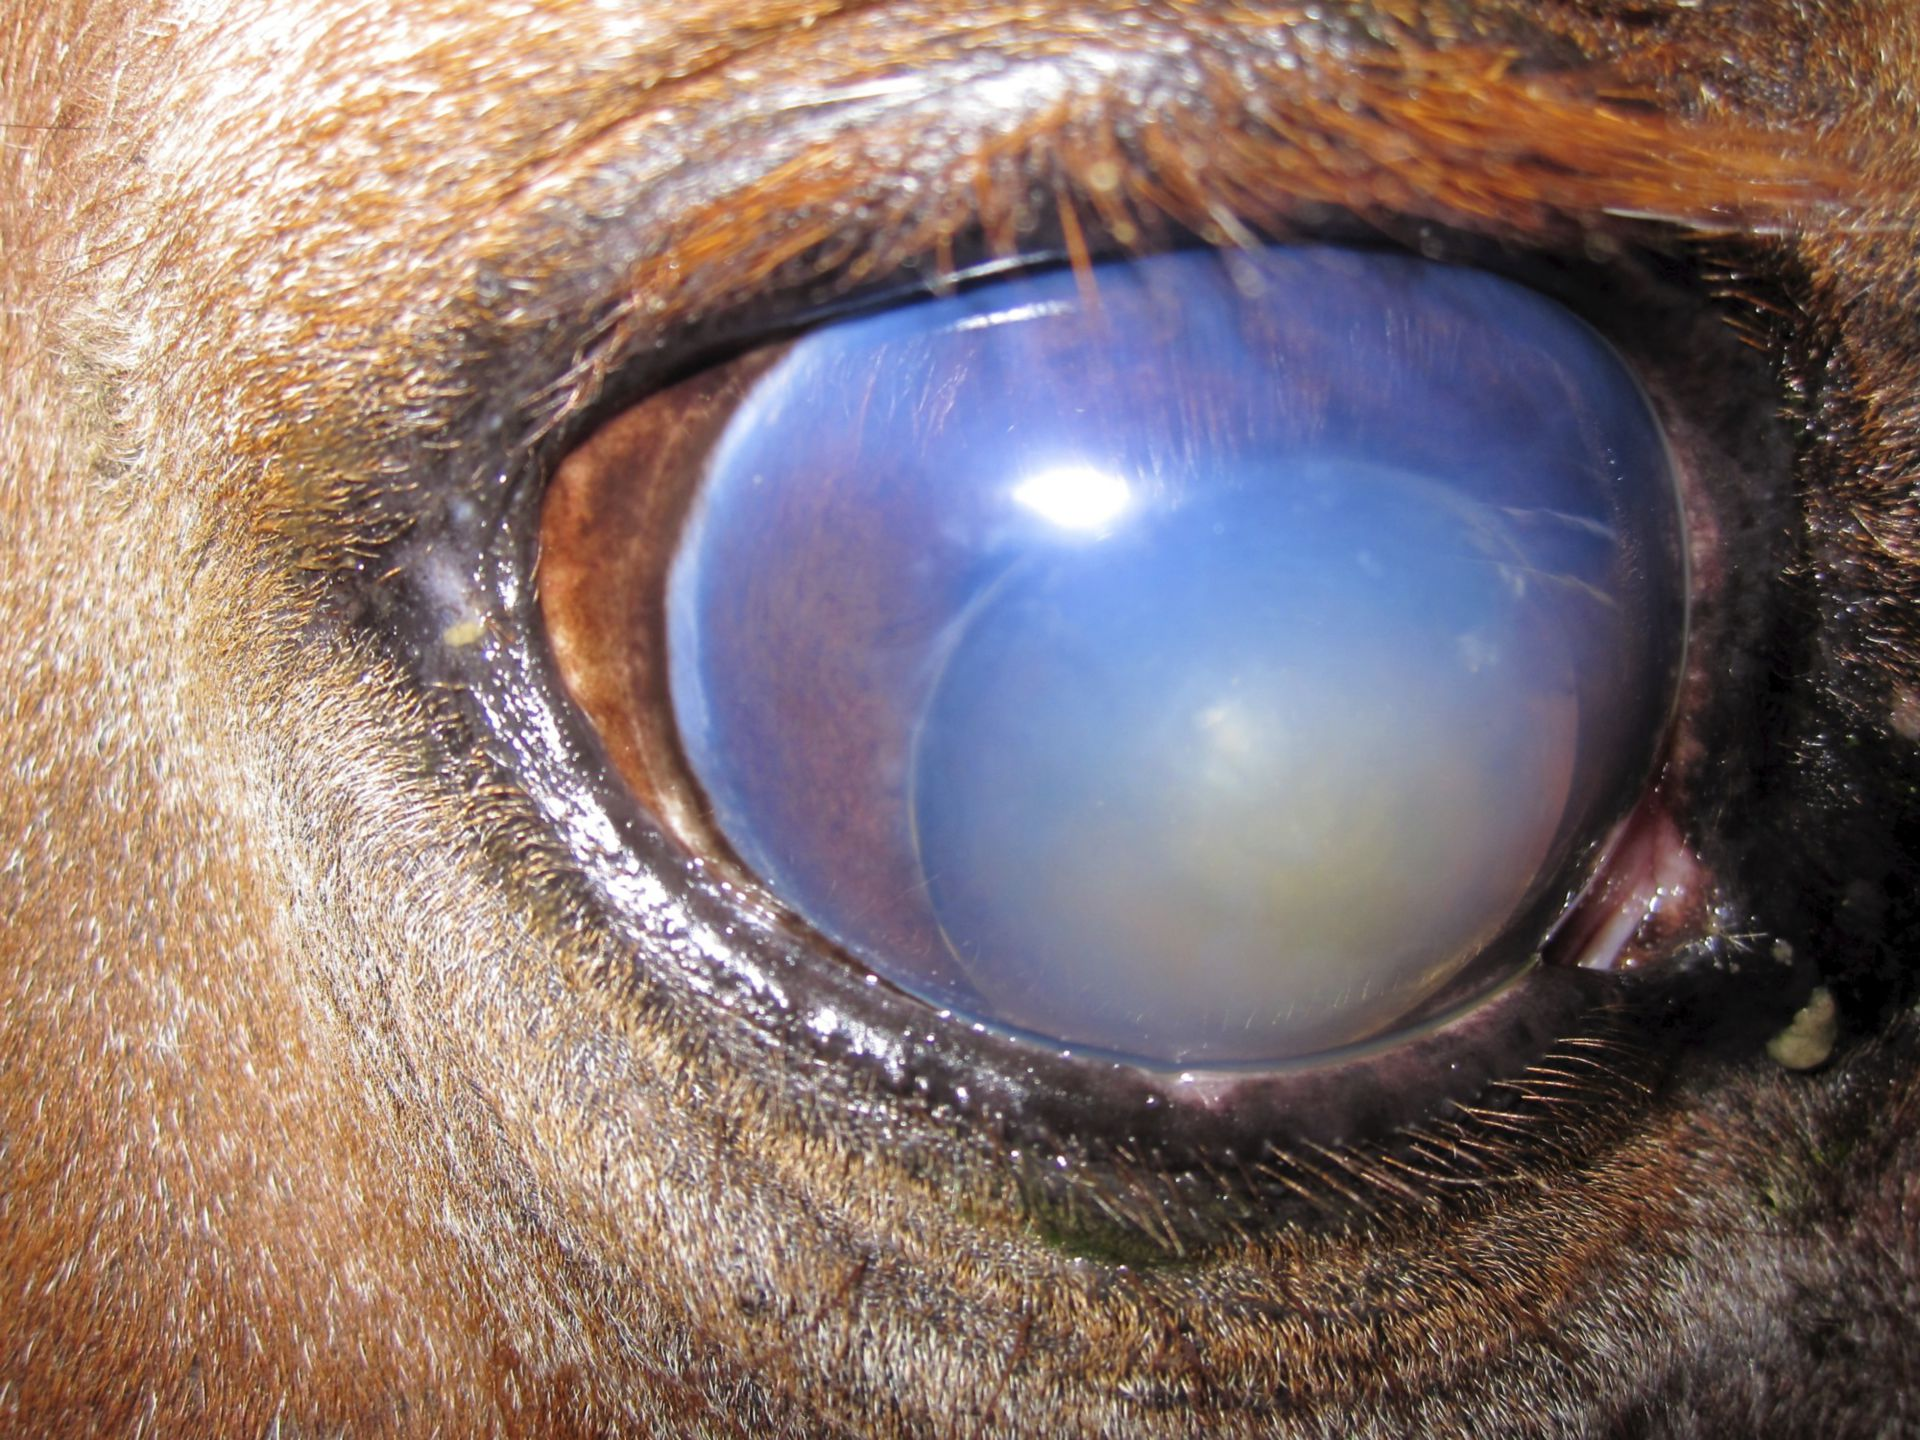 Glaucoma in a horse